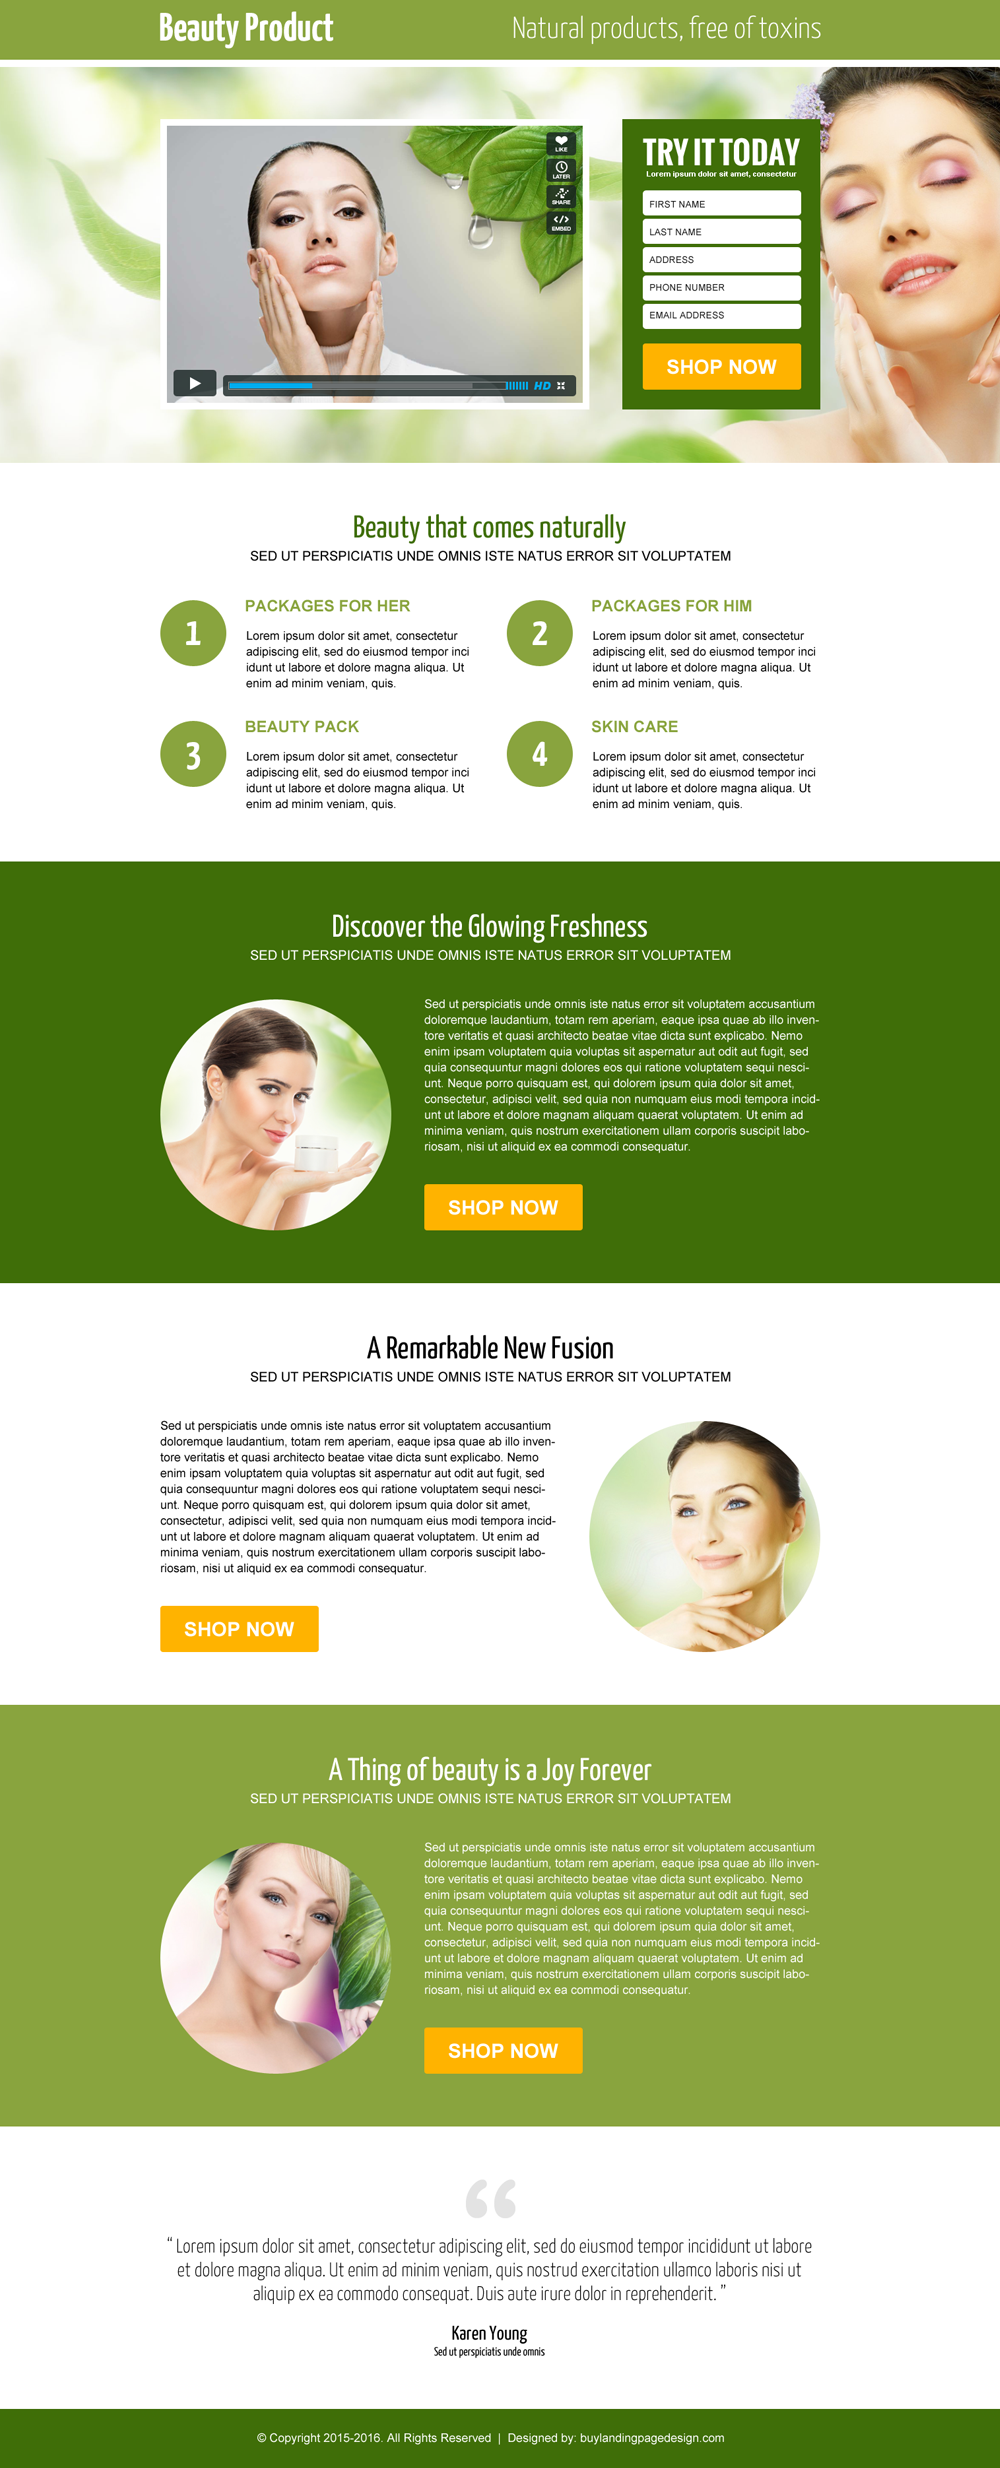 beauty-product-selling-lead-generation-video-landing-page-design-template-018